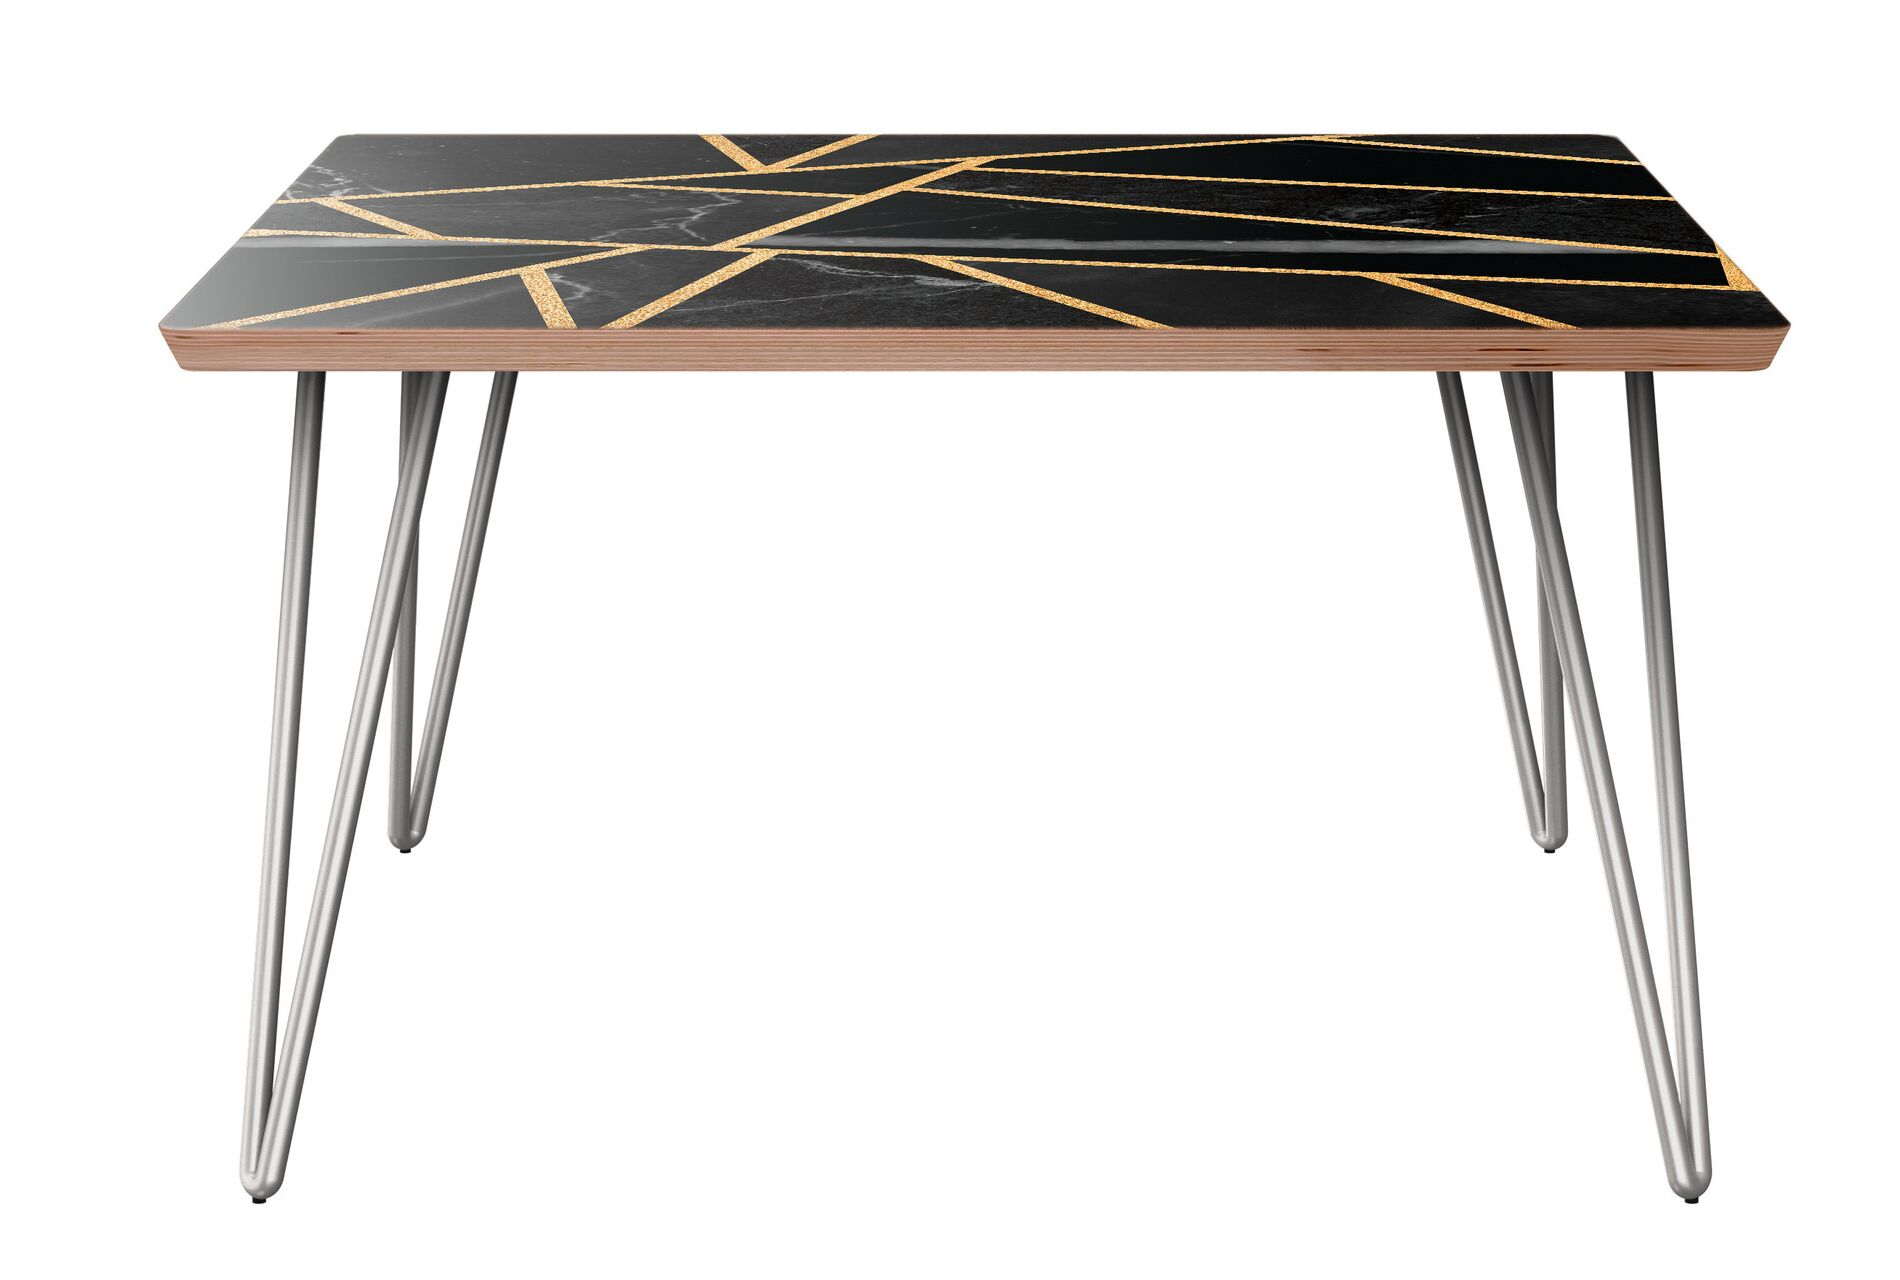 Roush Coffee Table Table Base Color: Chrome, Table Top Color: Walnut